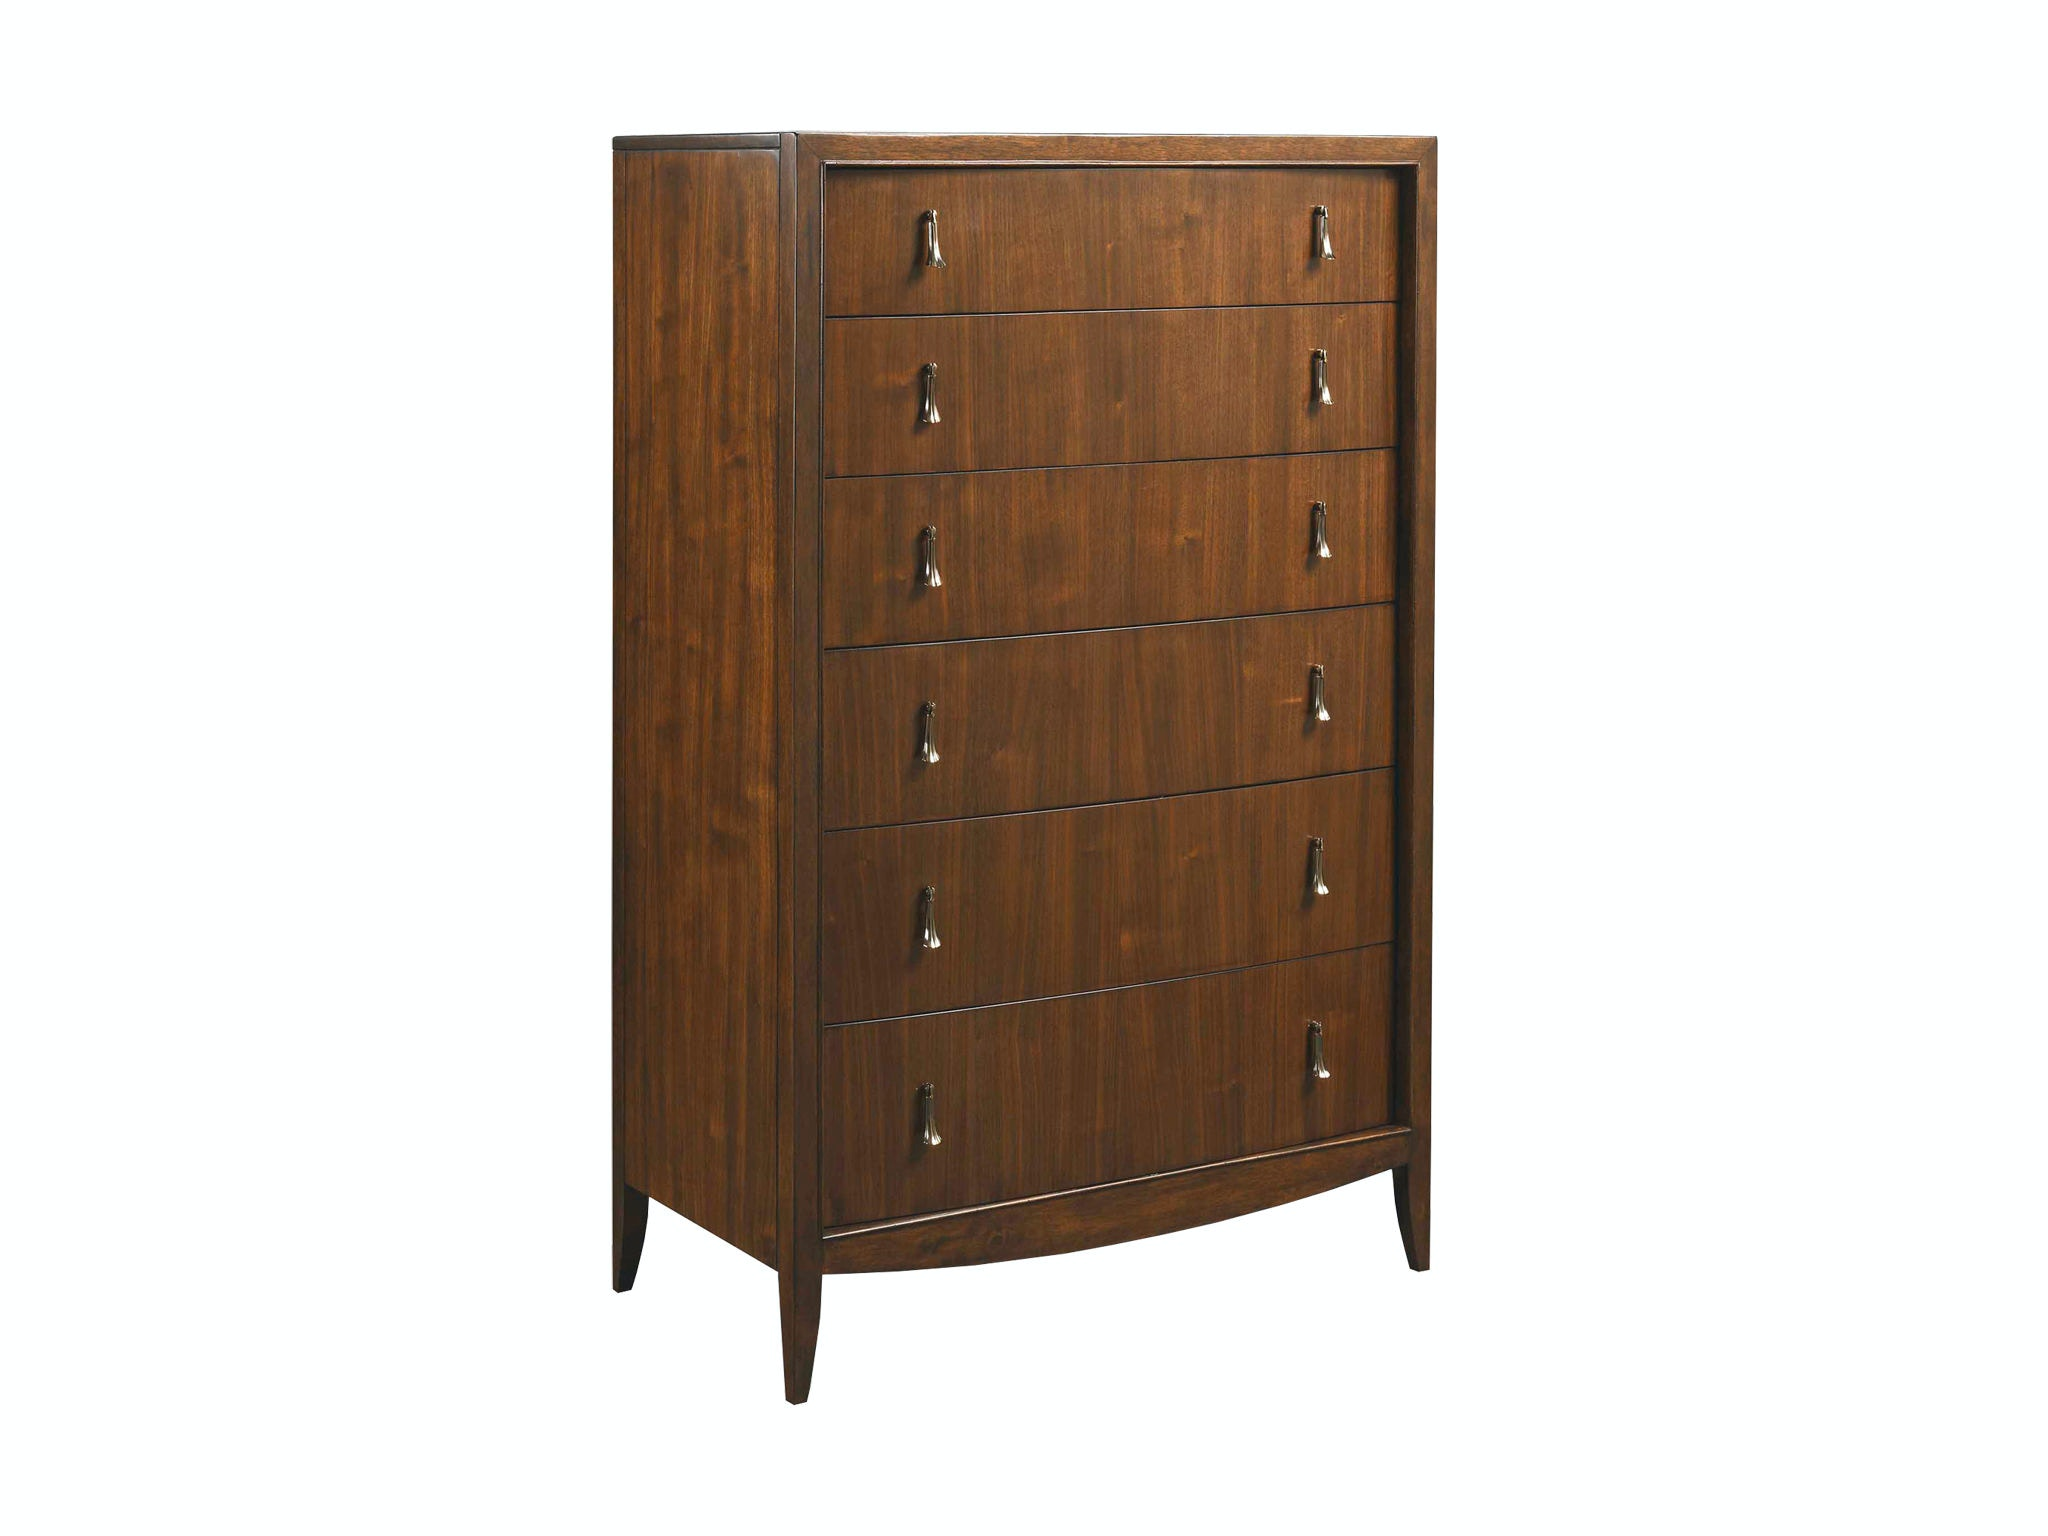 Drexel Bedroom Sculpted Drawer Chest 200 241 At Lauters Fine Furniture